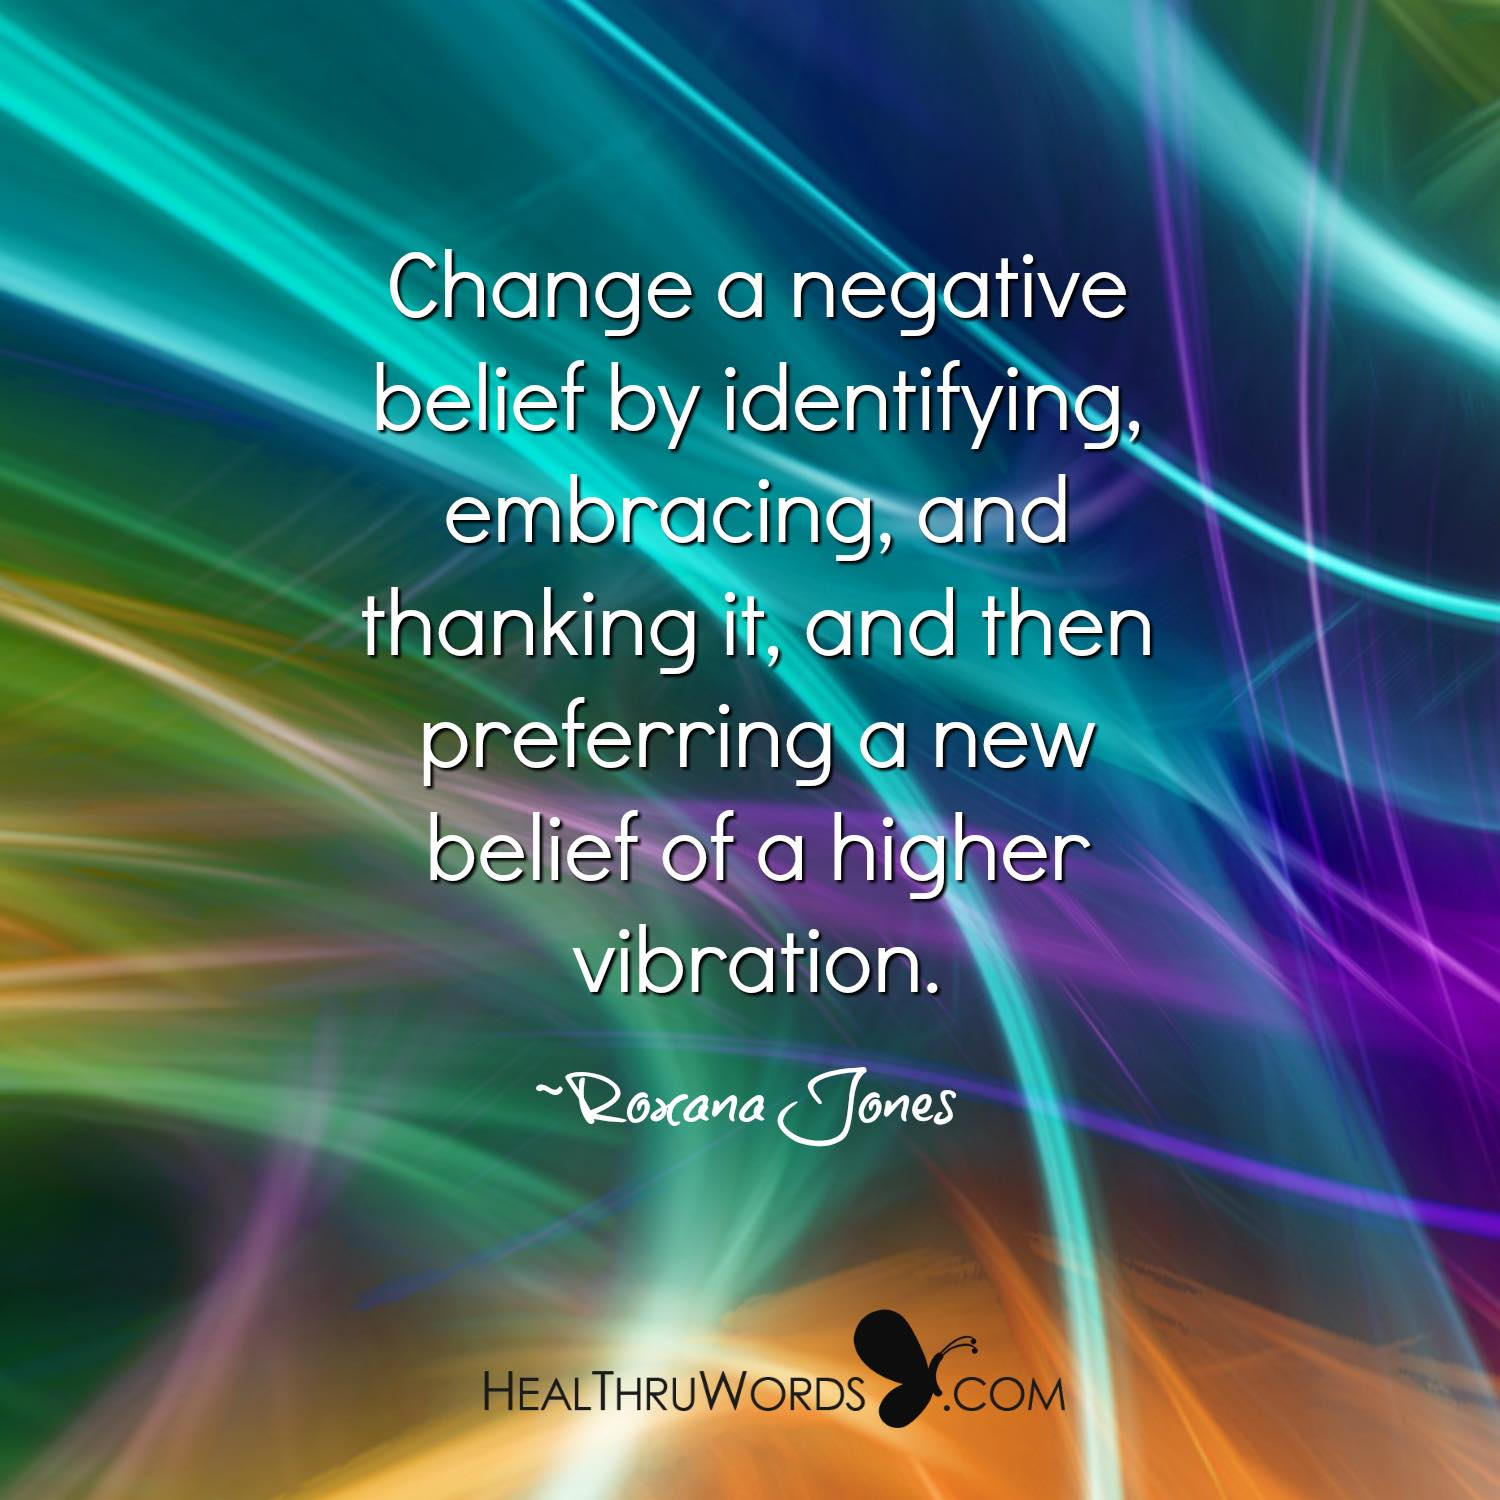 Inspirational Image: Raising your Vibration